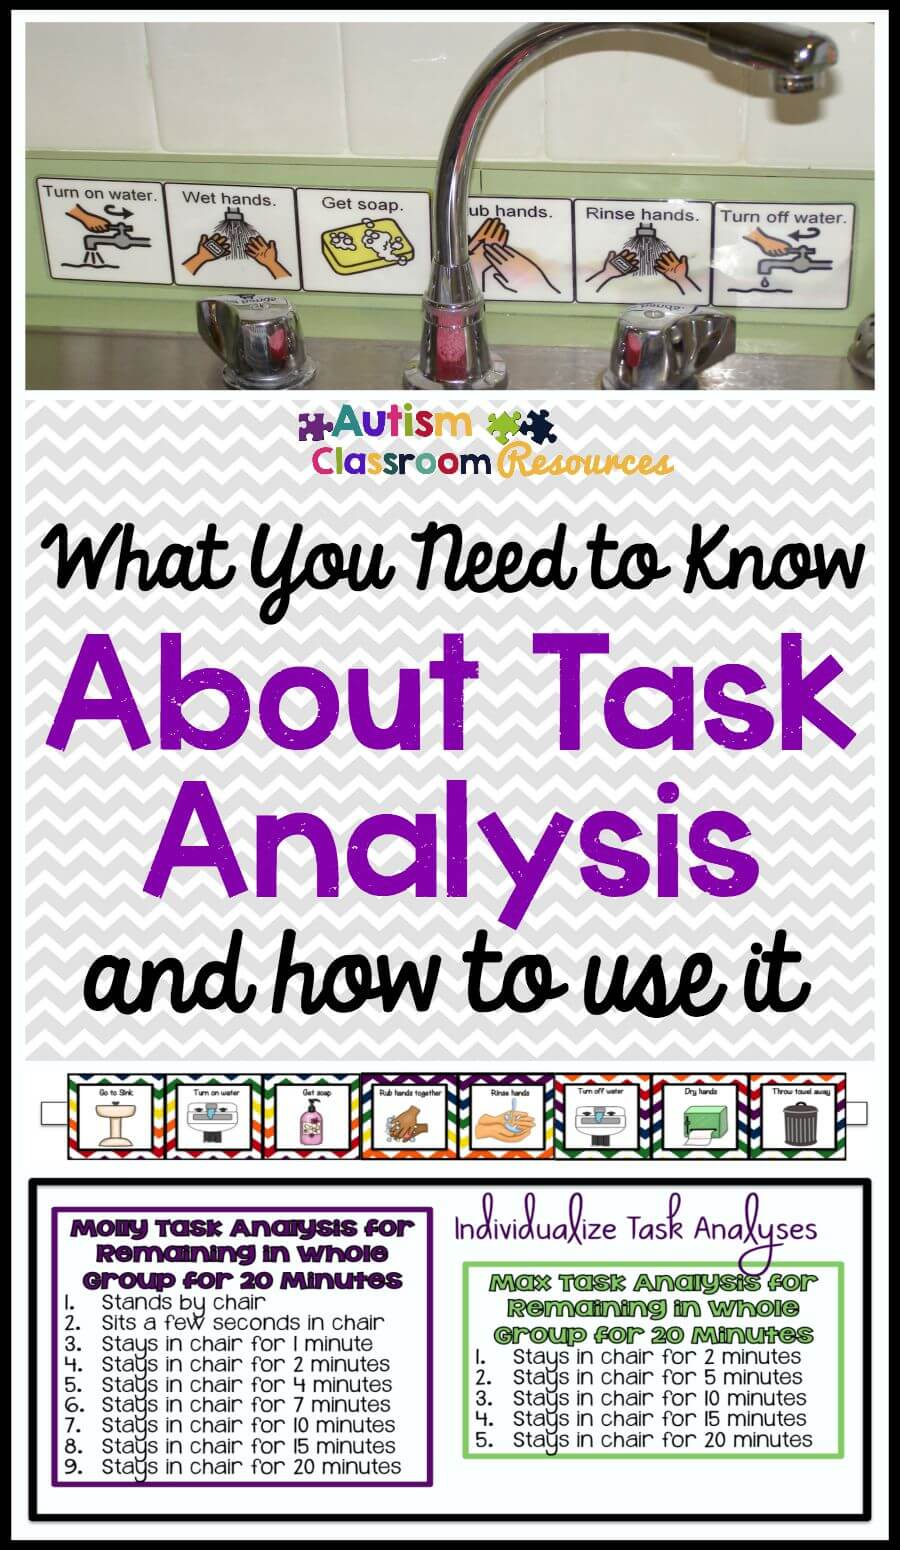 What You Need to Know About Task Analysis and Why You Should